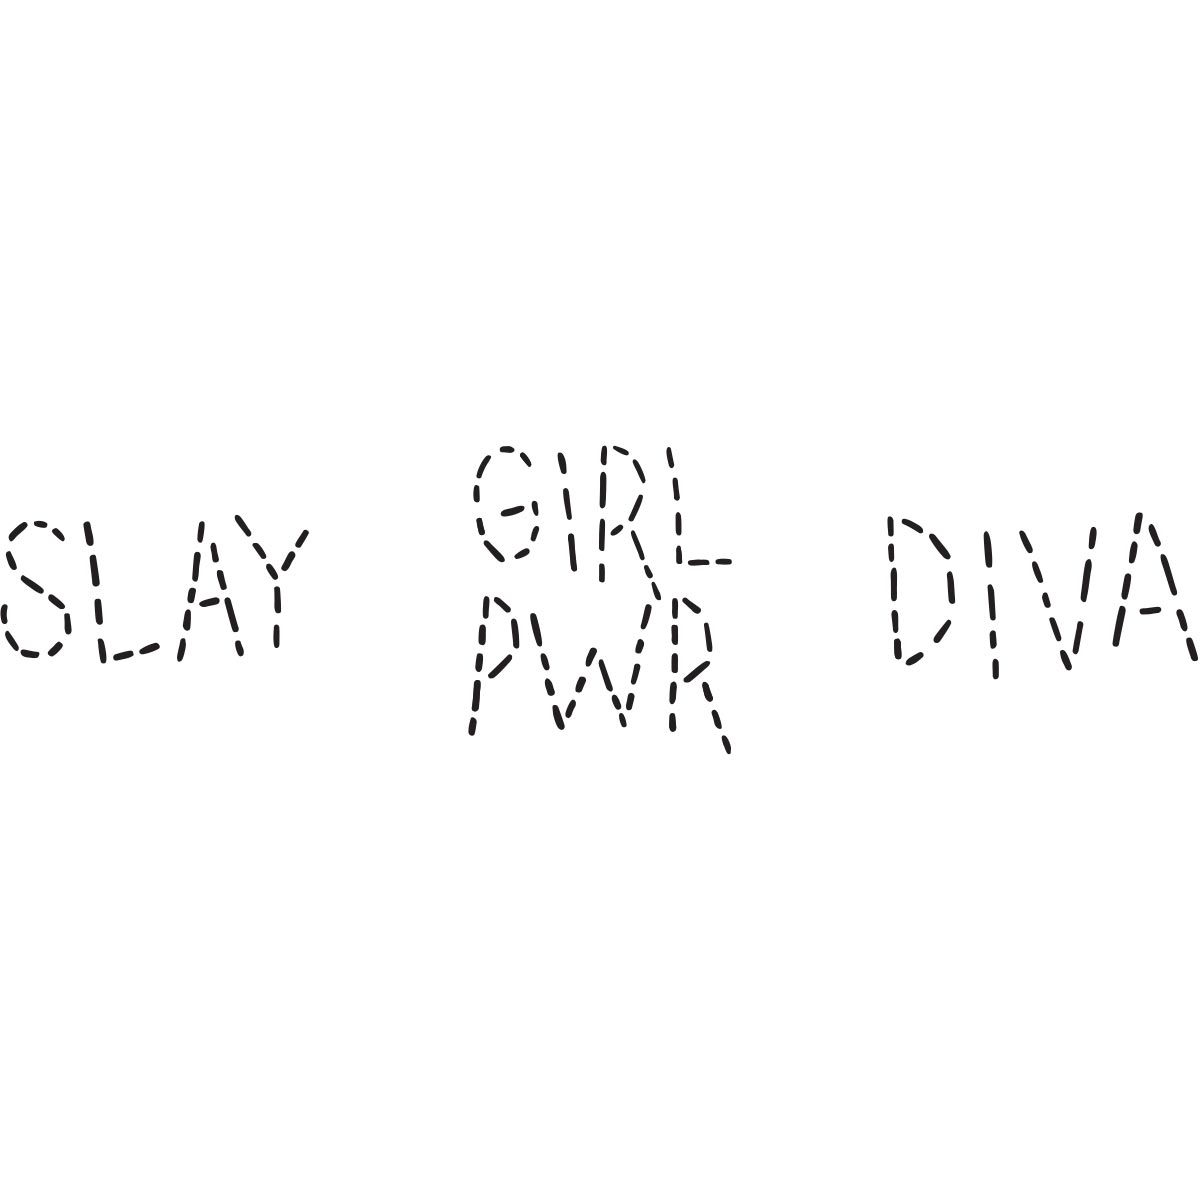 Fabric Creations™ Adhesive Stencils - Mini - Slay, 3